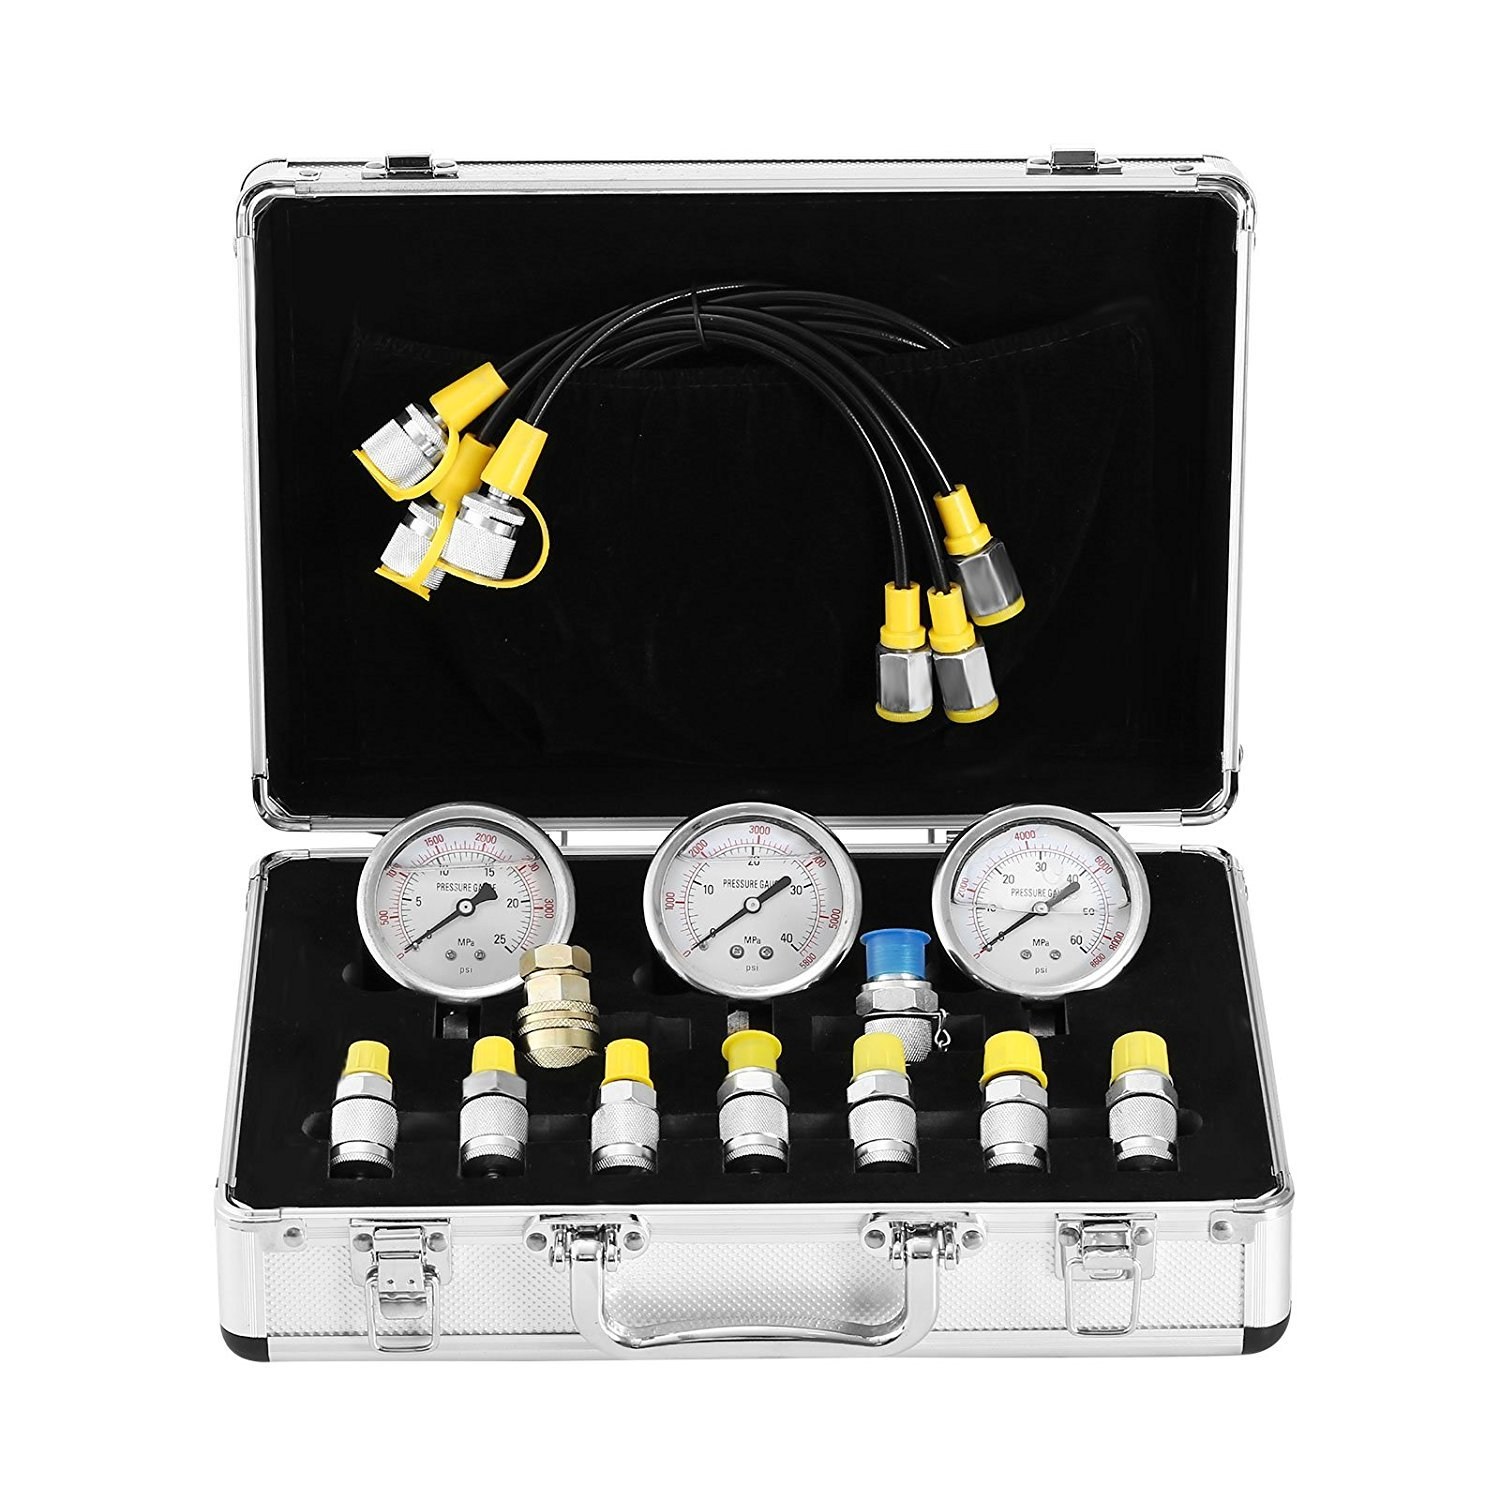 Popsport Hydraulic Pressure Gauge Kit 9000PSI Hydraulic Pressure Test Kit 60MPa Excavator Hydraulic Pressure Test Kit for Automobiles and Construction Machinery (Pressure Gauge Kit)